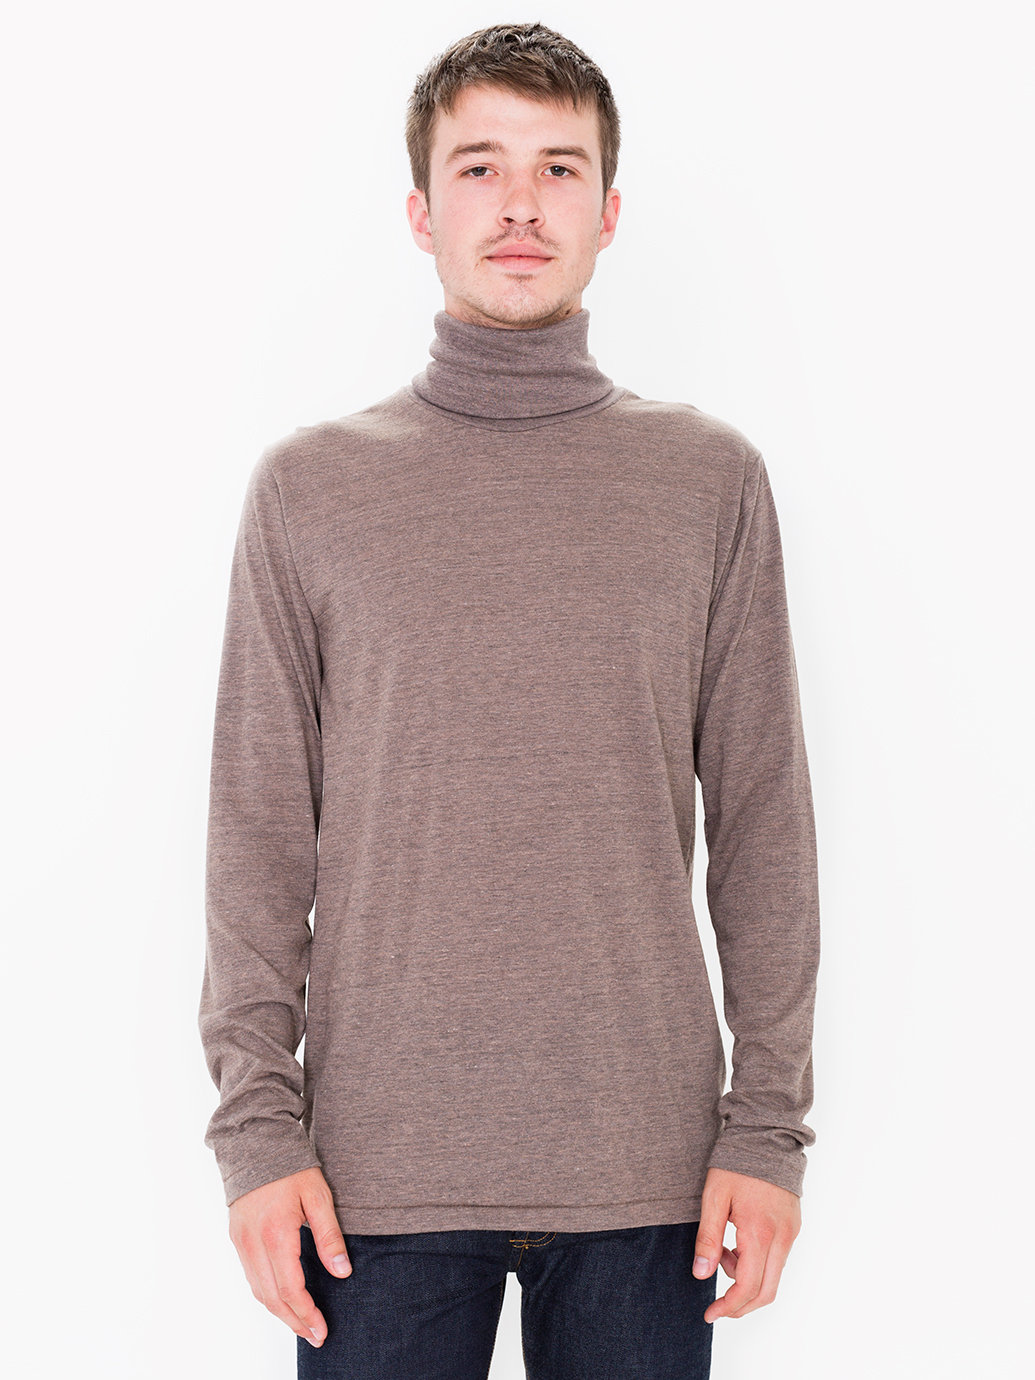 Turtleneck definition is - a high close-fitting turnover collar used especially for sweaters. How to use turtleneck in a sentence. a high close-fitting turnover collar used especially for sweaters; a garment (such as a sweater) with a turtleneck.